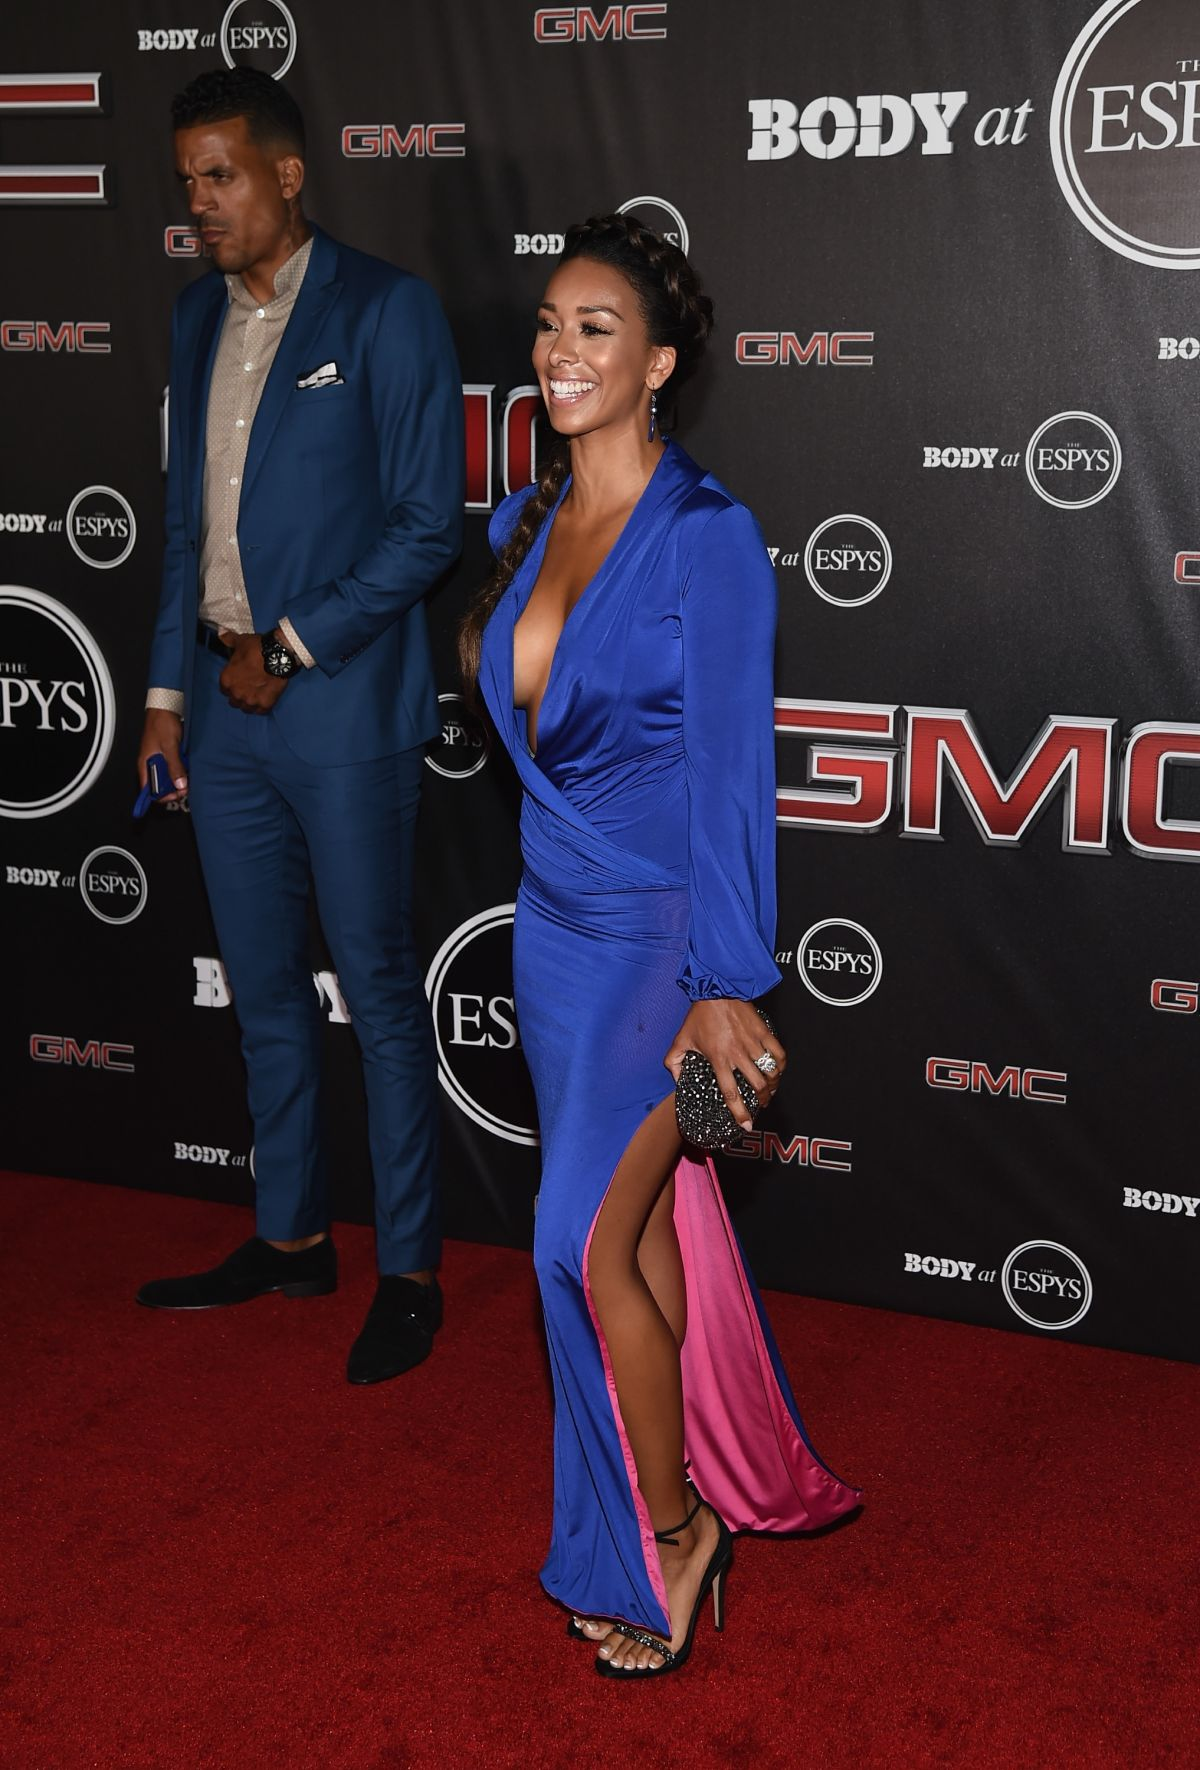 GLORIA GOVAN at ESPN Presents Body at ESPYS